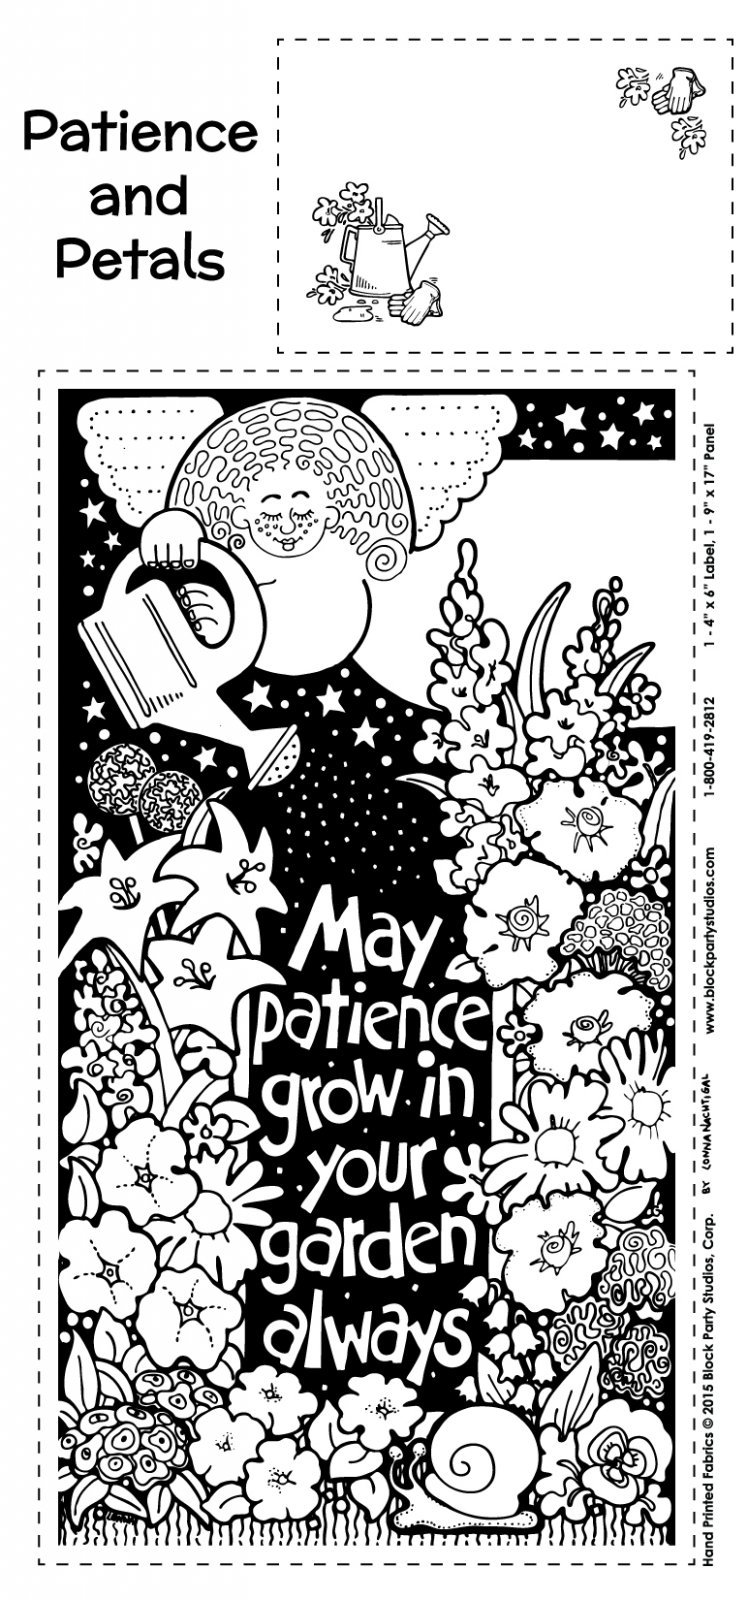 Patience and Petals by Block Party Studios